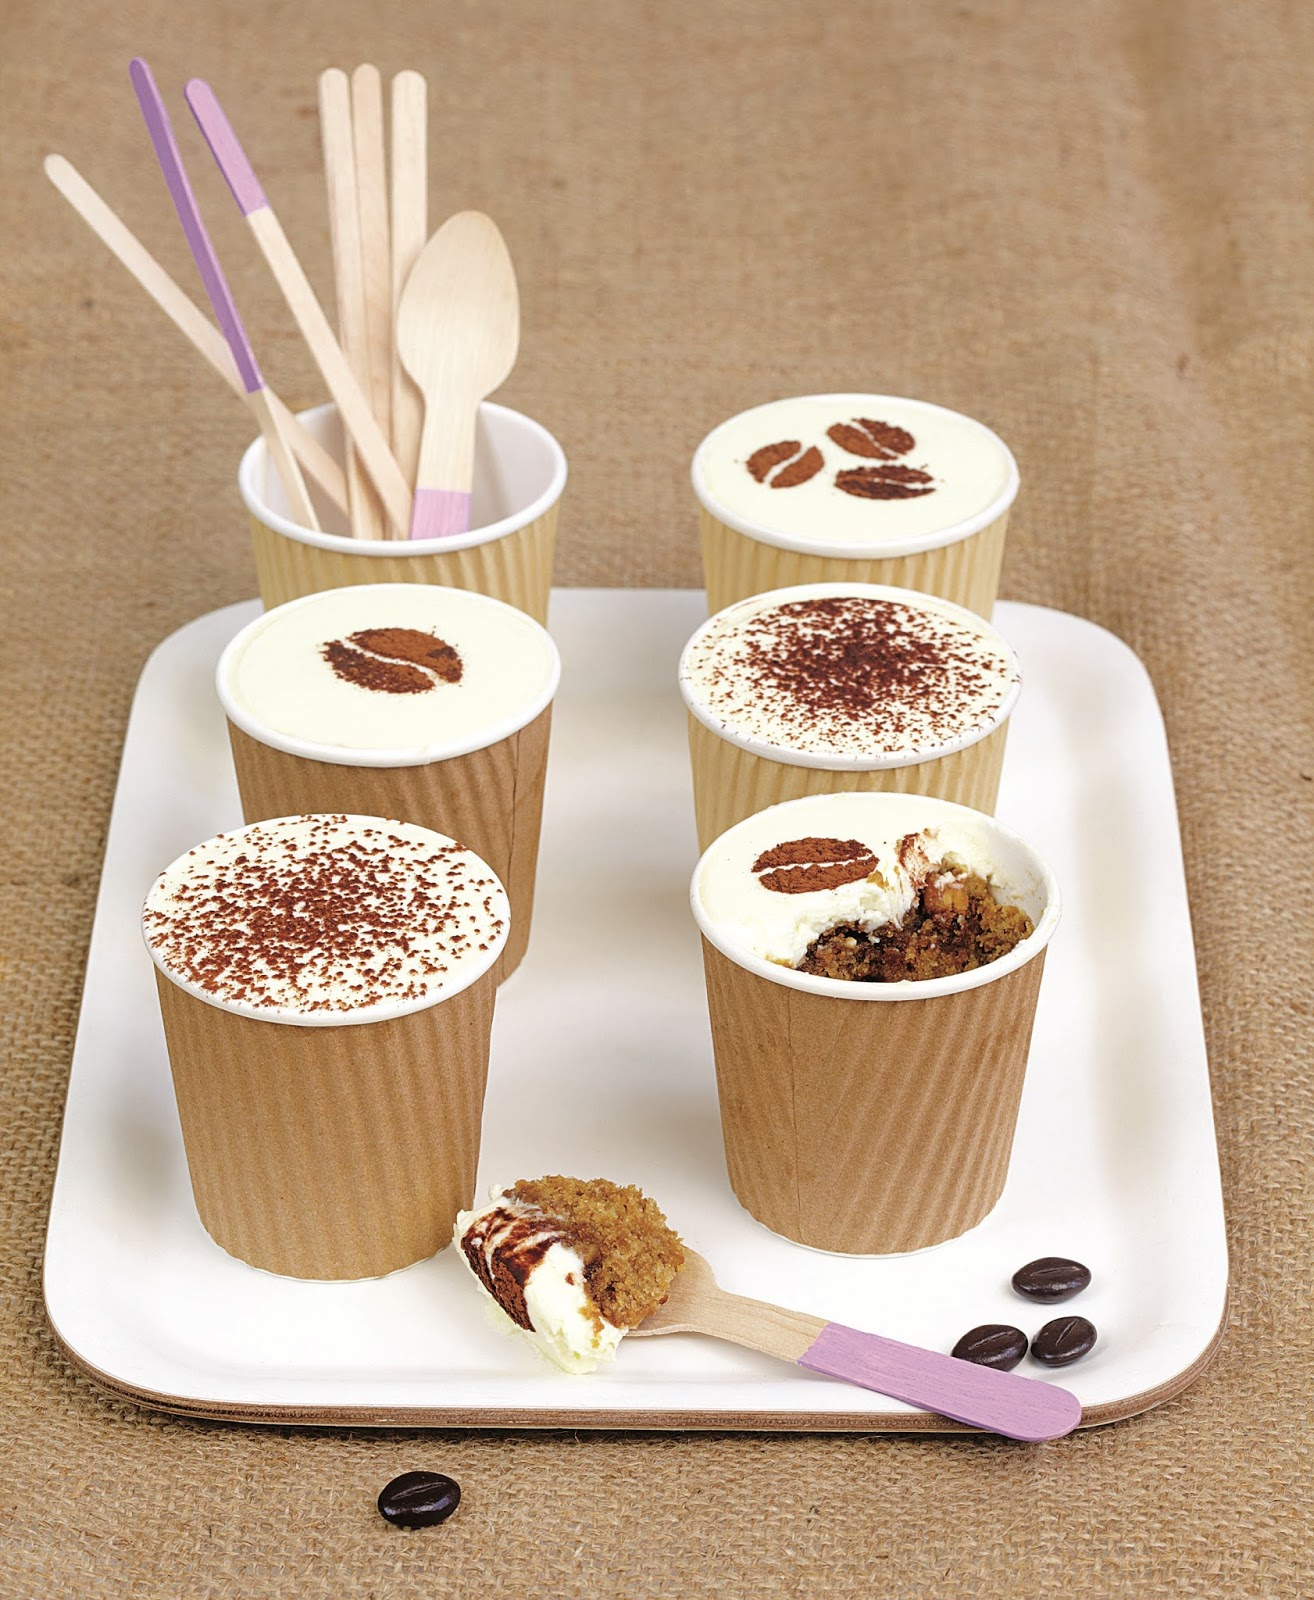 3 Yummy Mug Cake Ideas:  Homemade Cakes In Cups